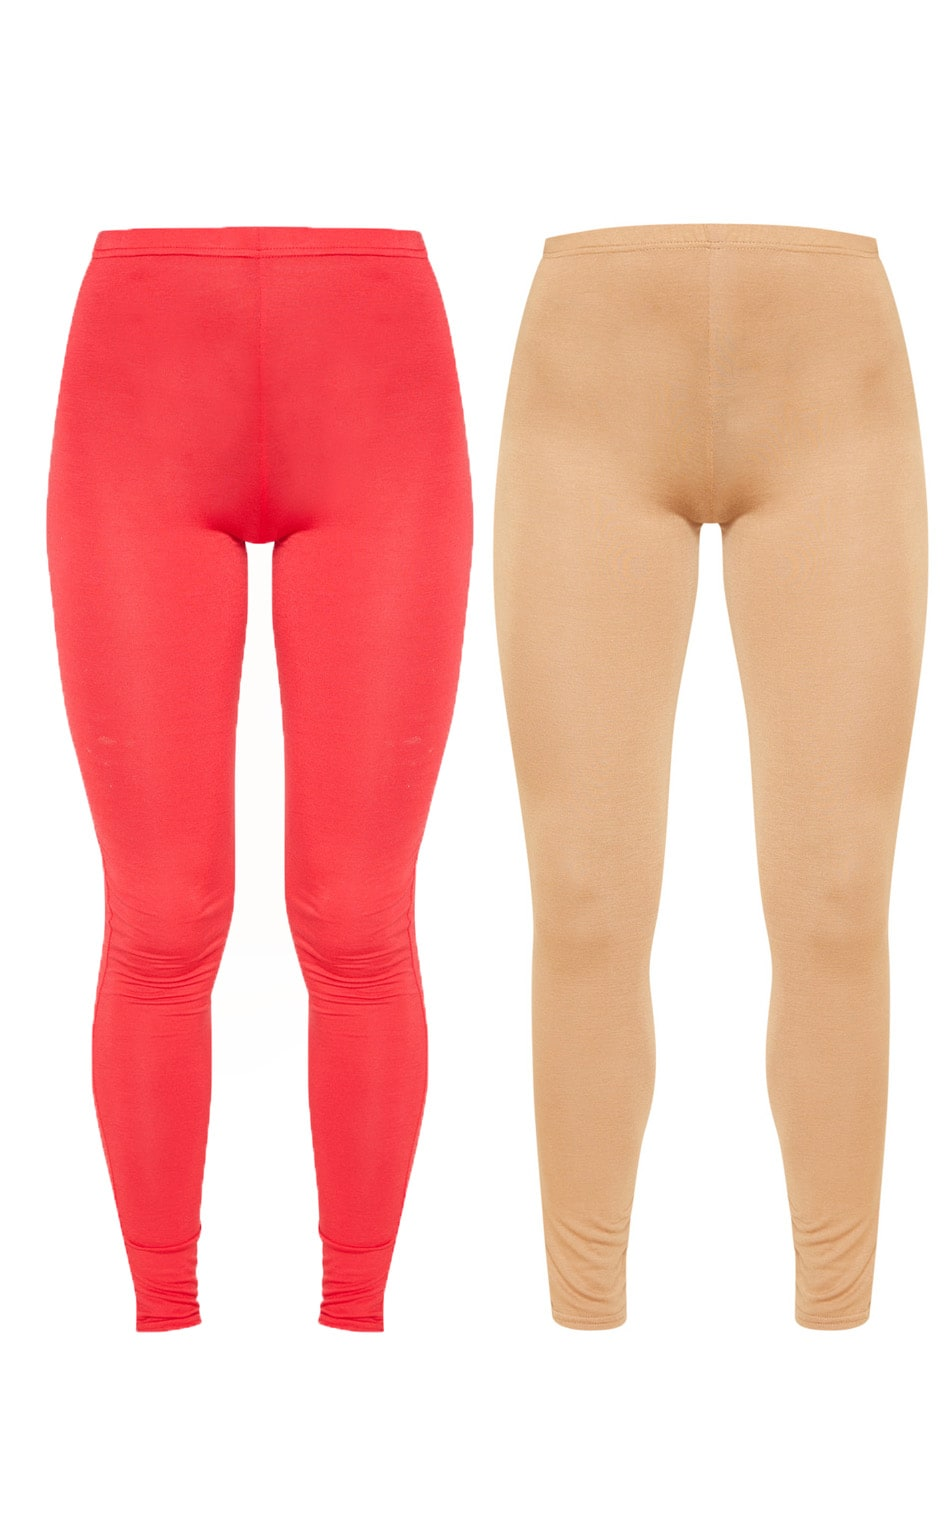 Basic lot de 2 leggings en jersey rouge et camel 3